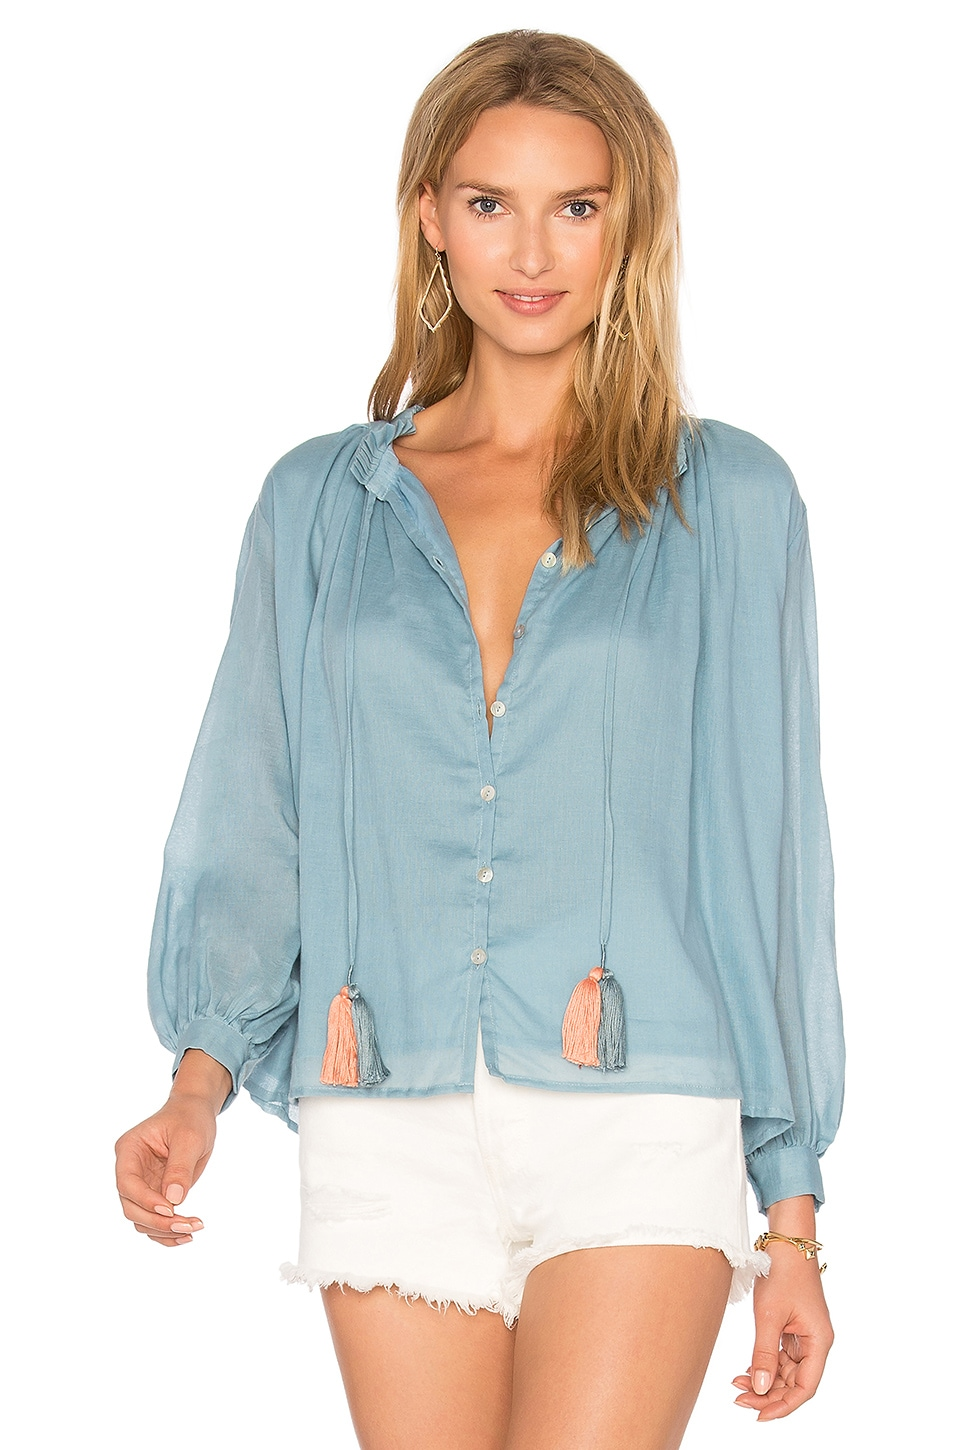 Carolina K Katie Blouse in Blue